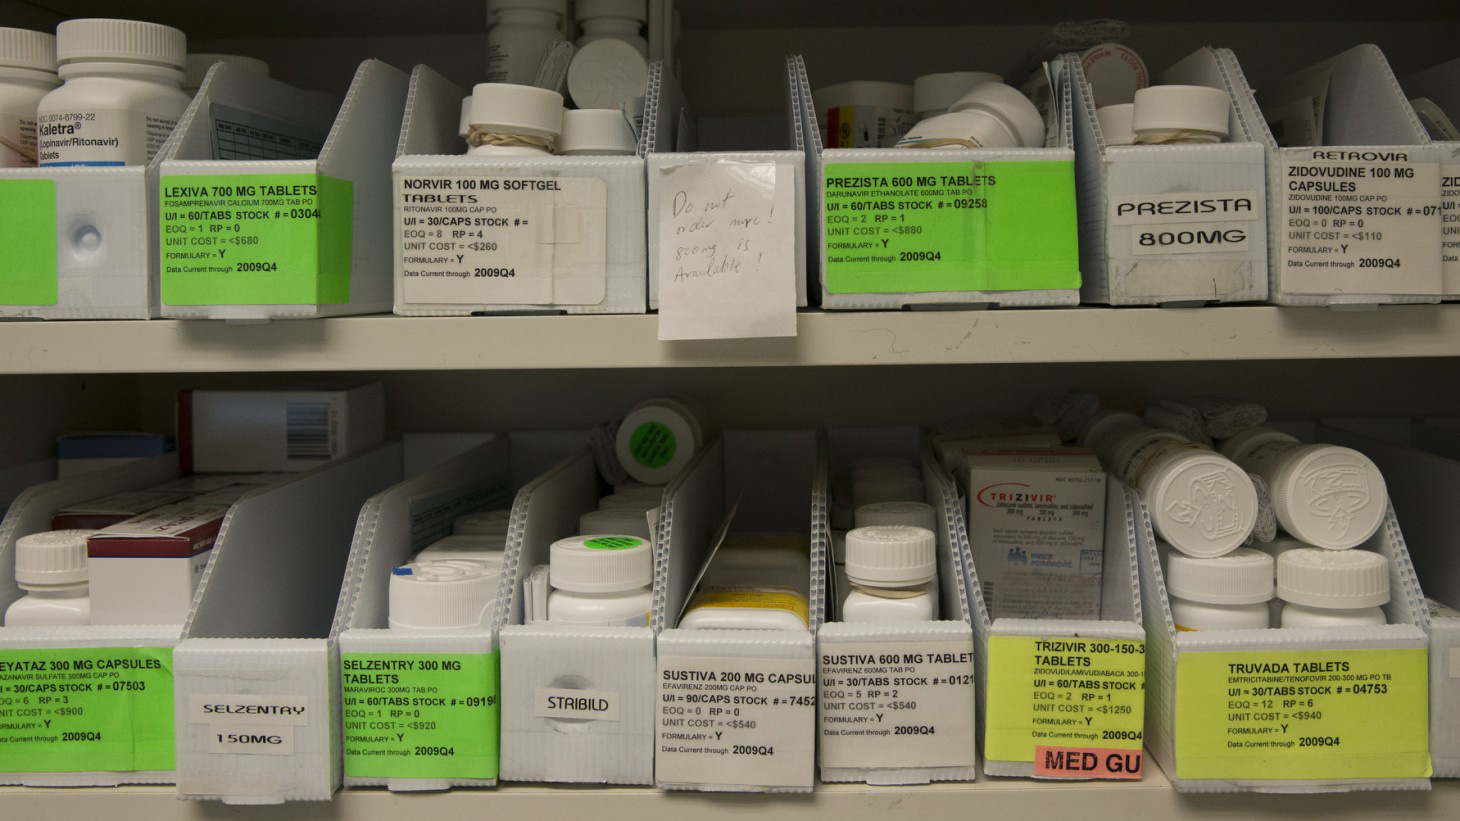 An oversupply of on-hand medications can be wasteful.